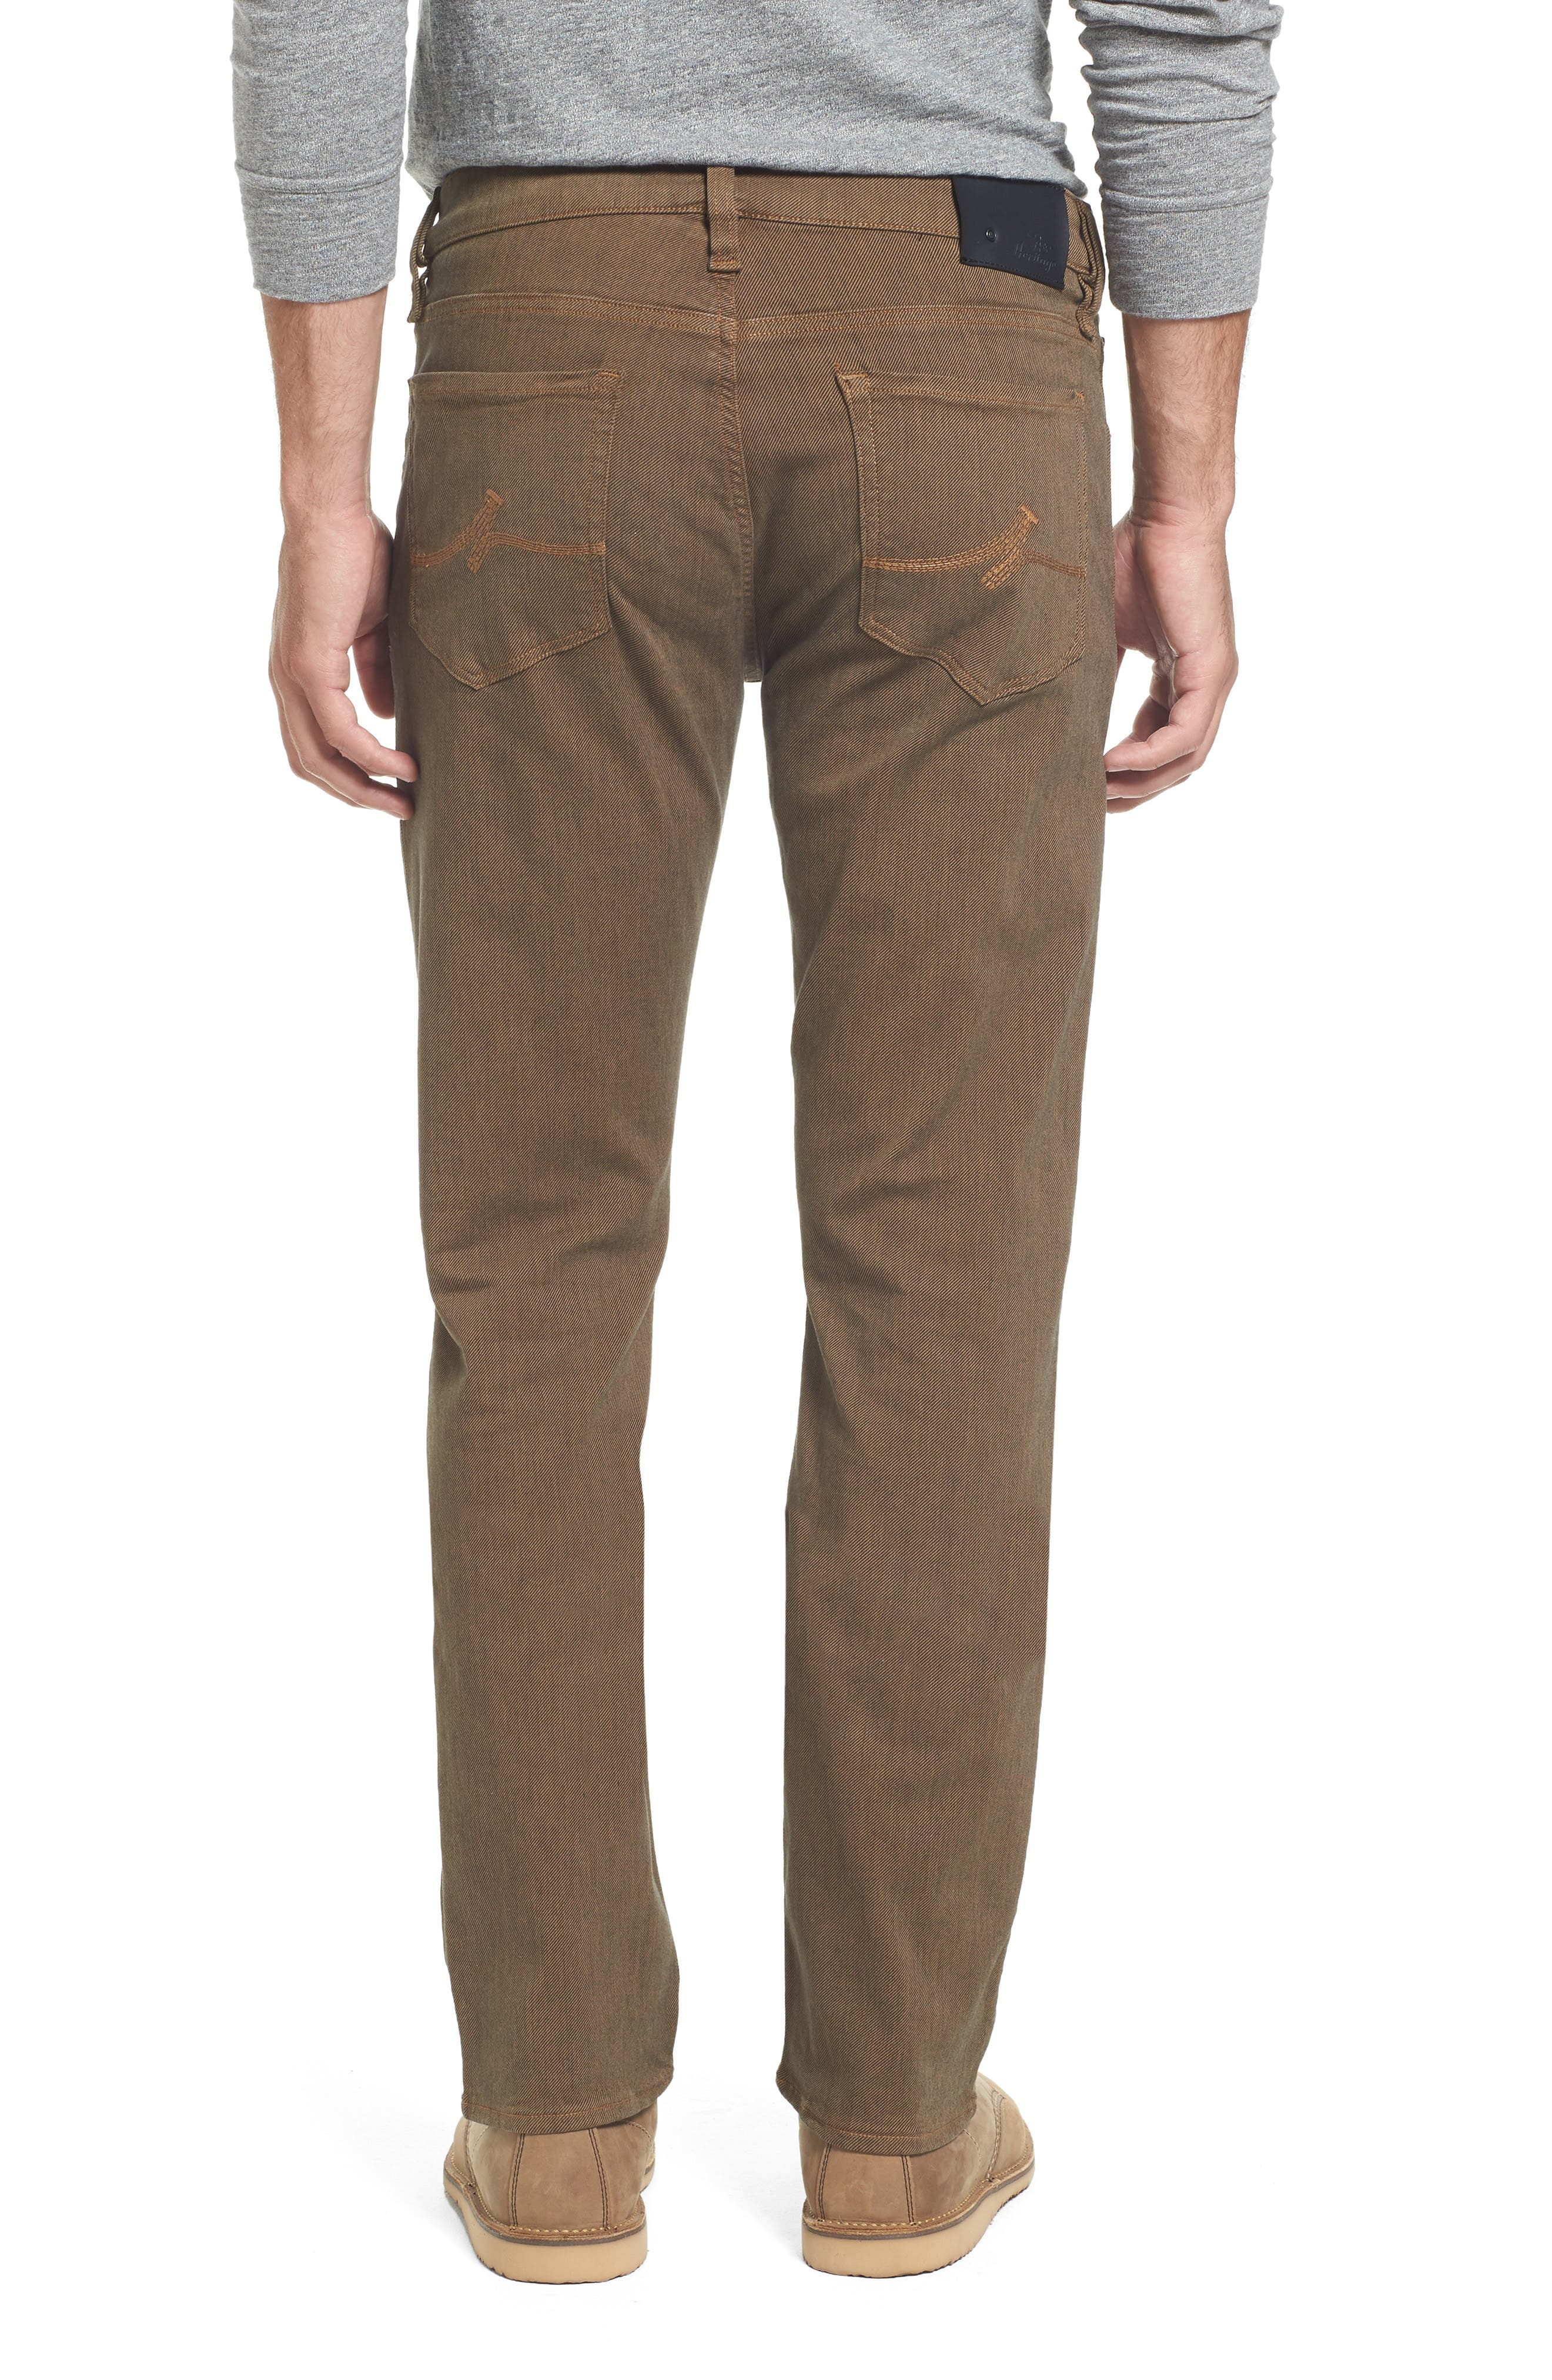 Heritage 34 Courage Straight Leg Jeans,                             Alternate thumbnail 2, color,                             200